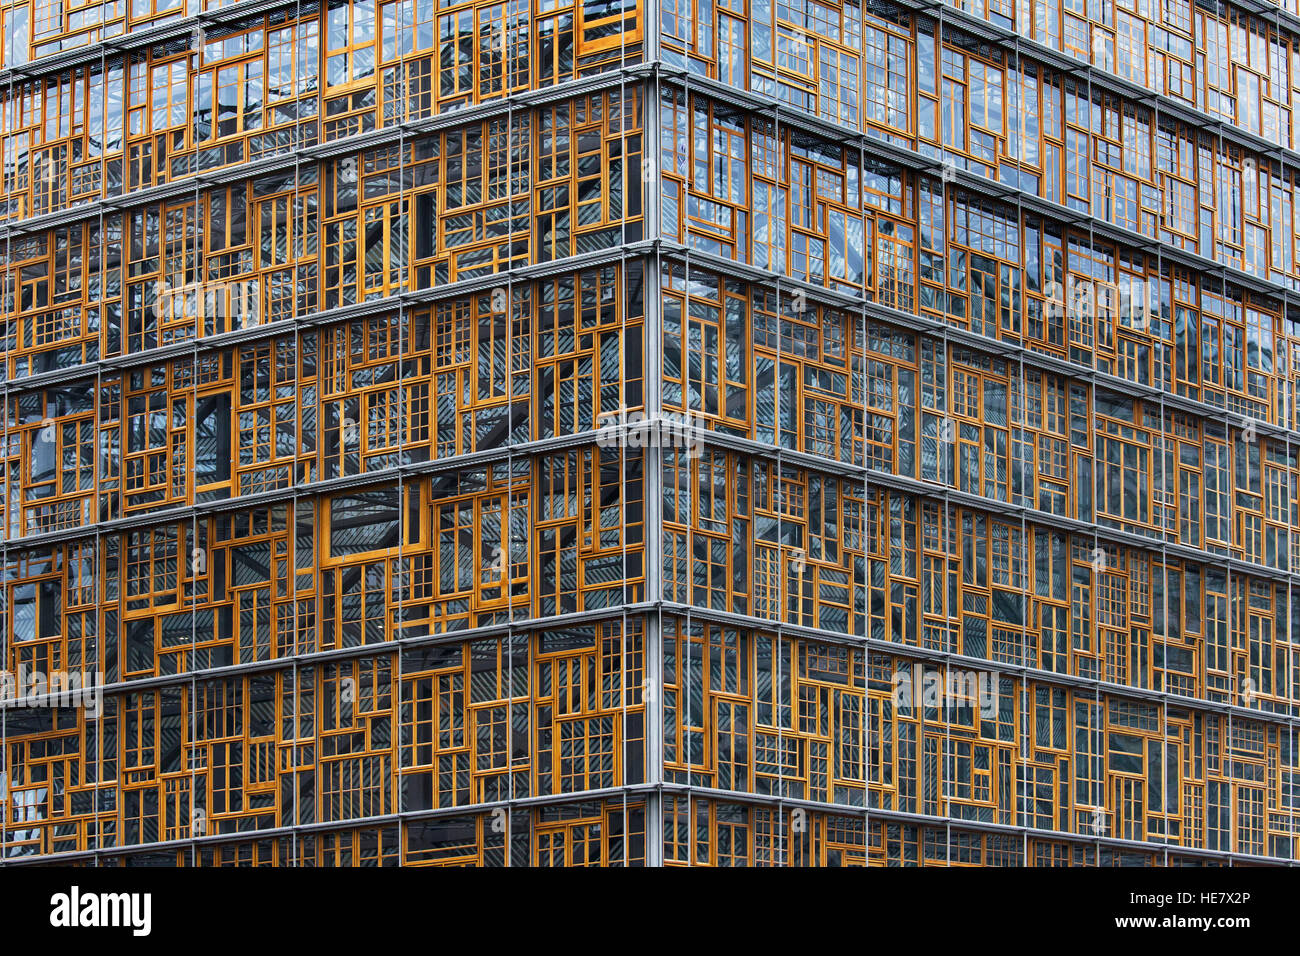 Facade of the Europa Building in Brussels, Belgium, designed by Philippe Samyn & Partners. - Stock Image